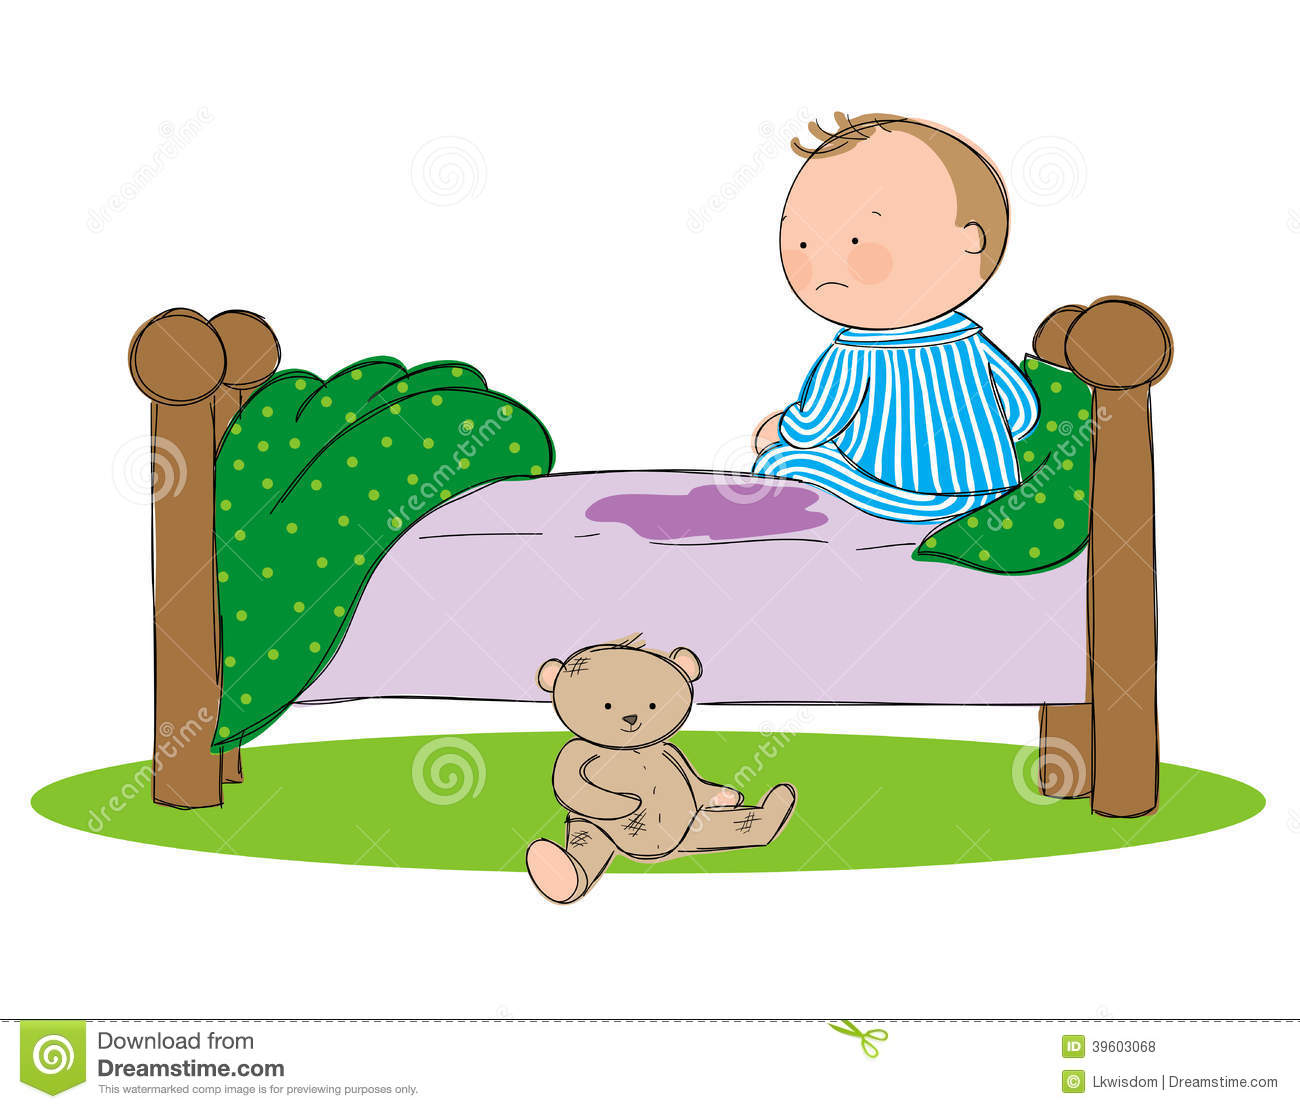 of are doktor hello wetting preschoolers pregnancy causes sub in the bed bedwetting what